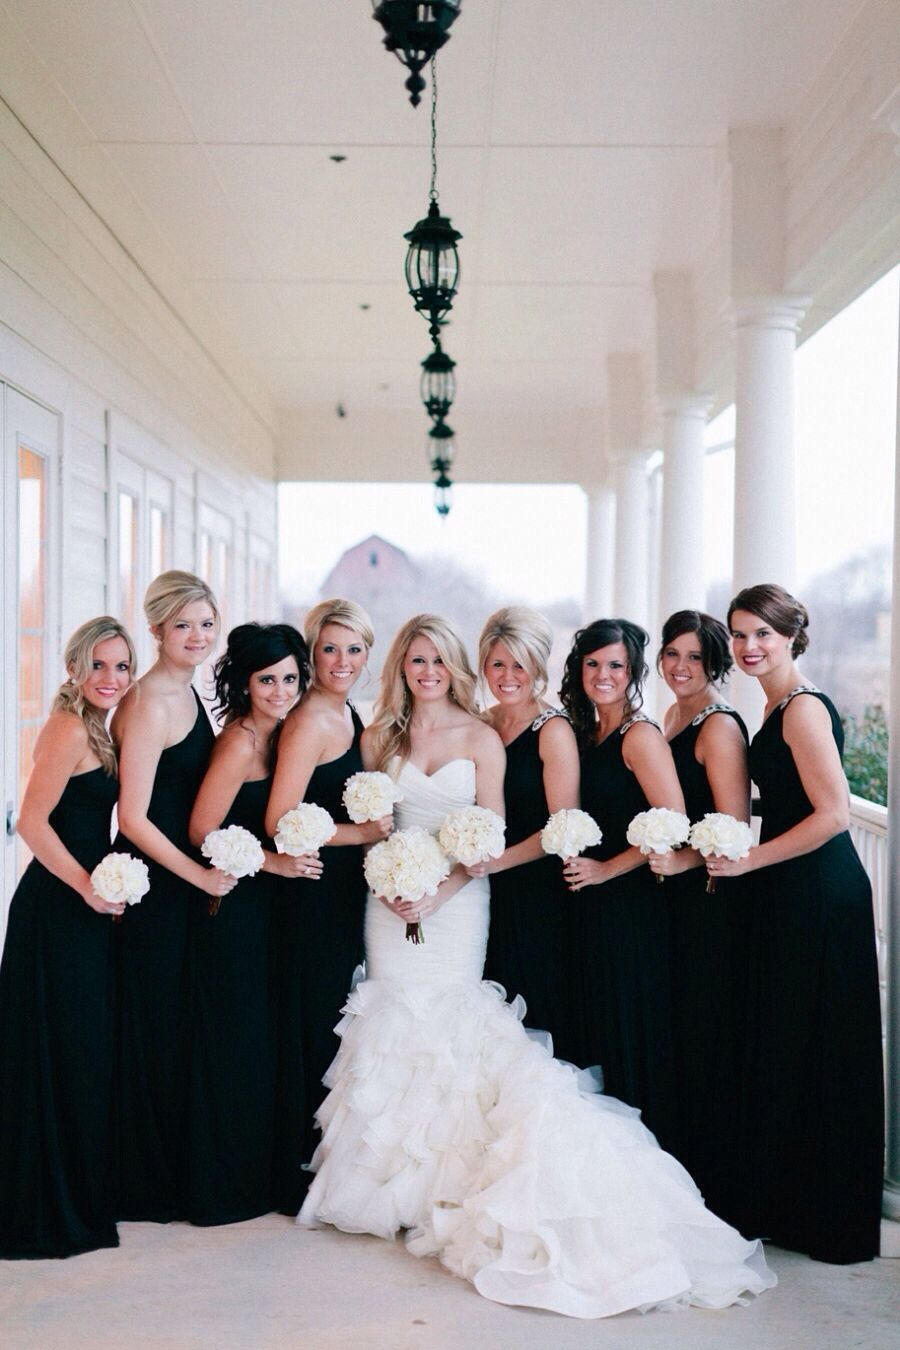 Black bridesmaid dresses bridesmaid dresses pinterest black black bridesmaid dresses ombrellifo Image collections